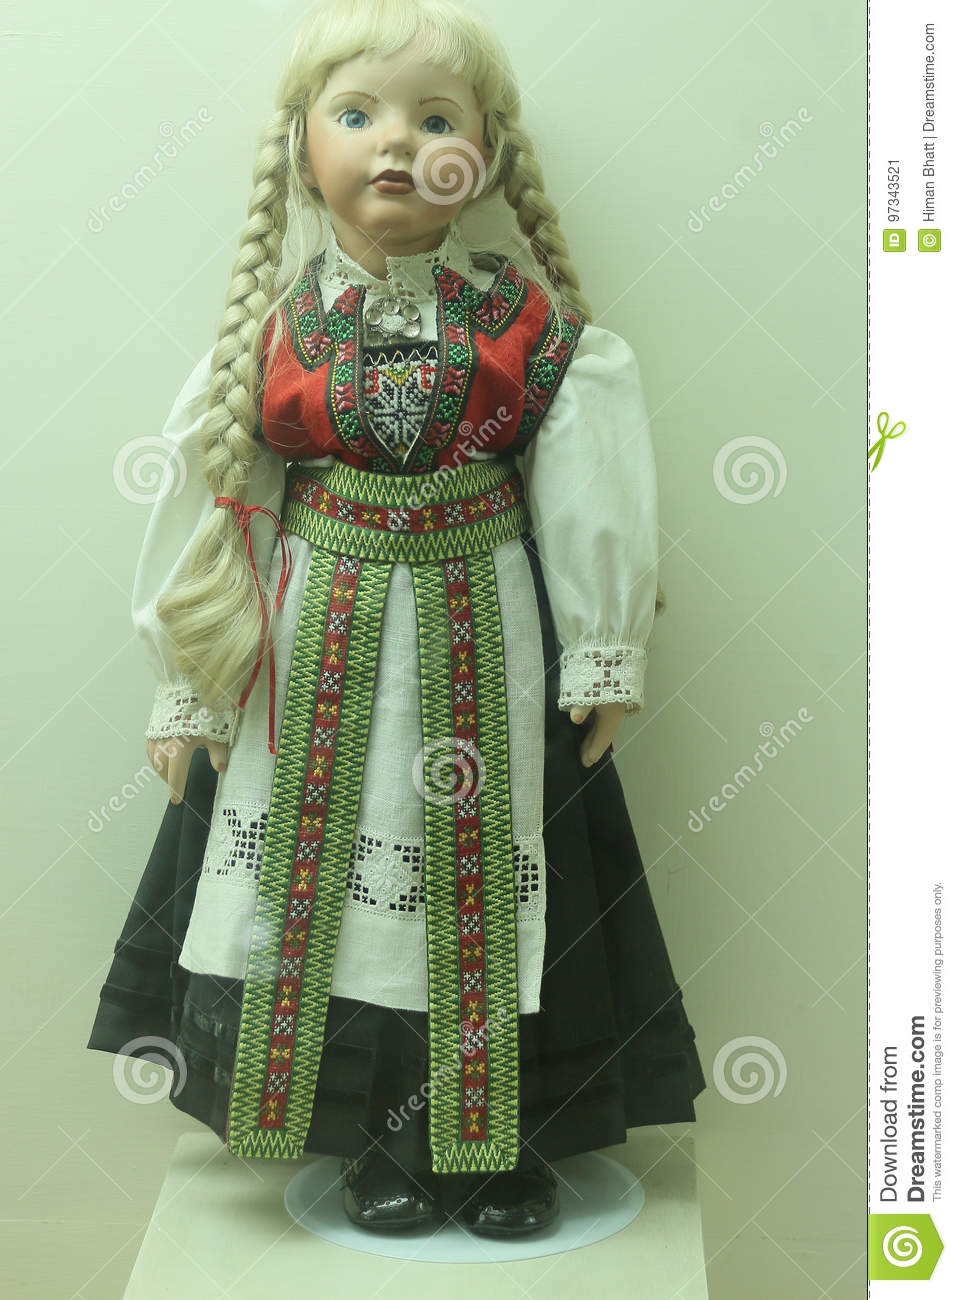 Russia Tradition Cloth Doll Editorial Photo - Image of knit, pattern ...